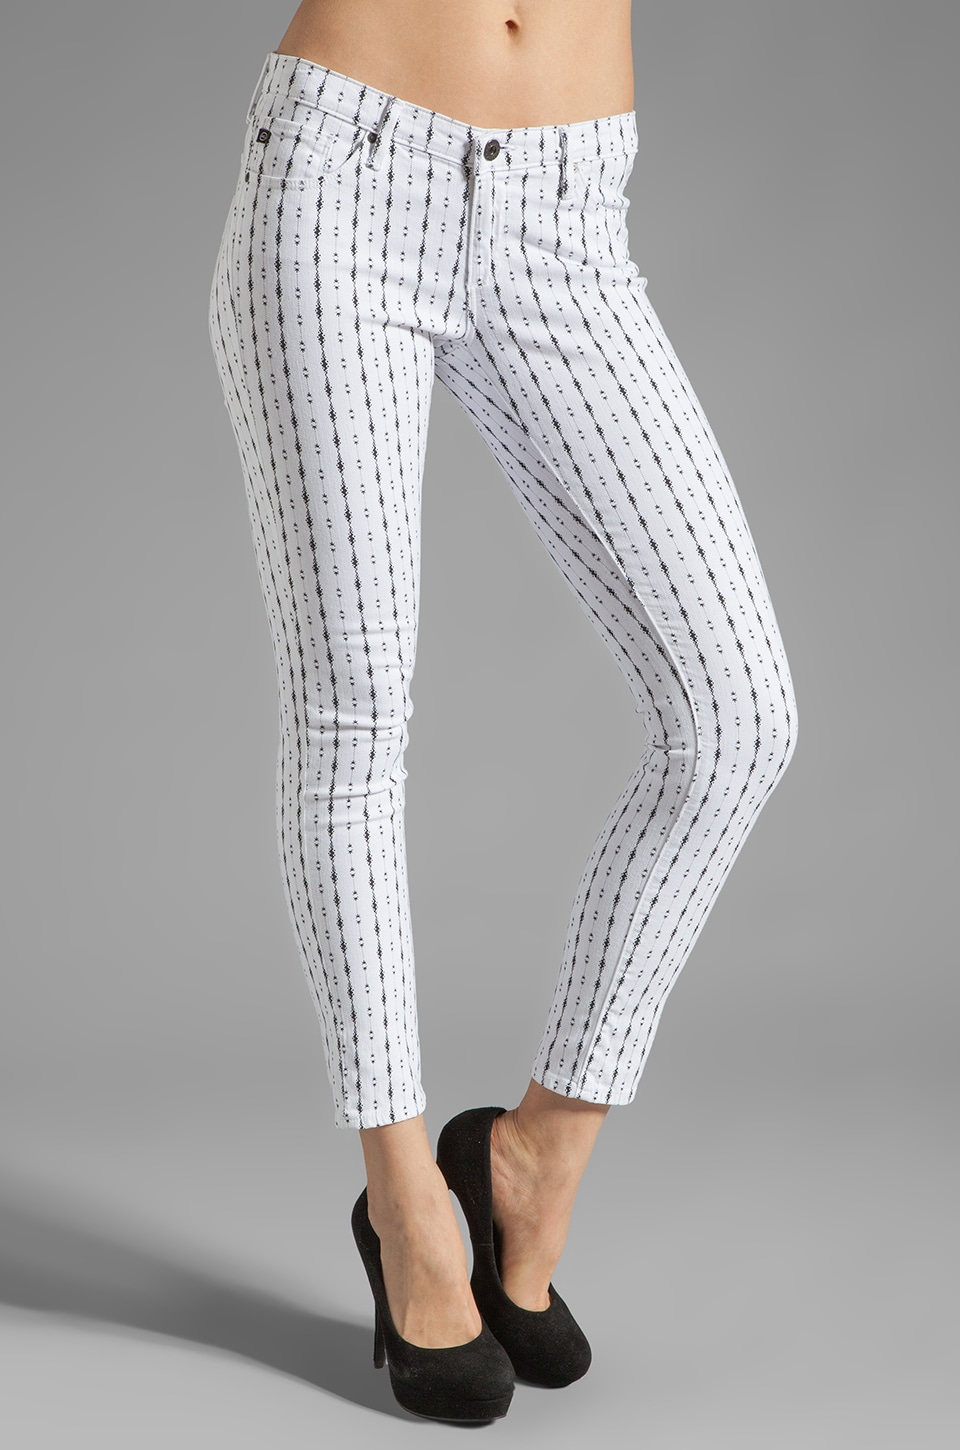 AG Adriano Goldschmied The Rocker Ankle Legging in Zig Zag White